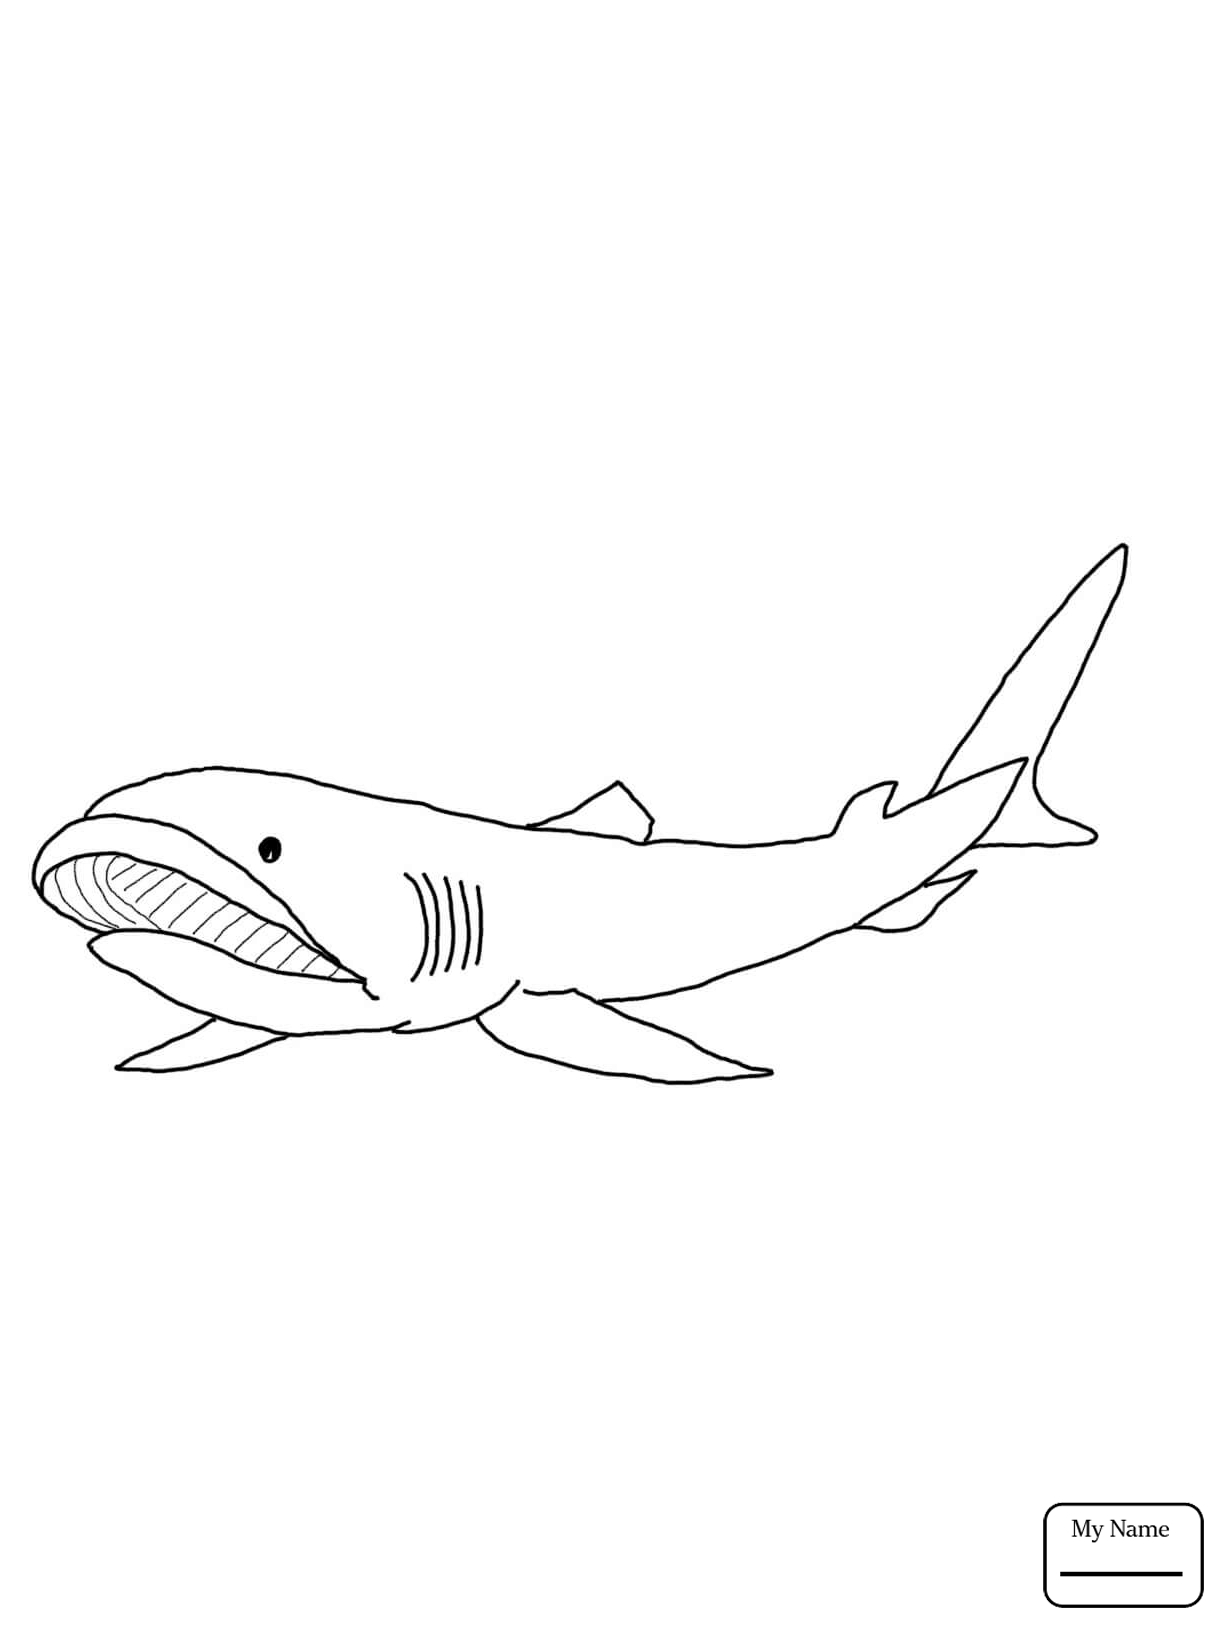 Mako Shark Drawing at GetDrawings